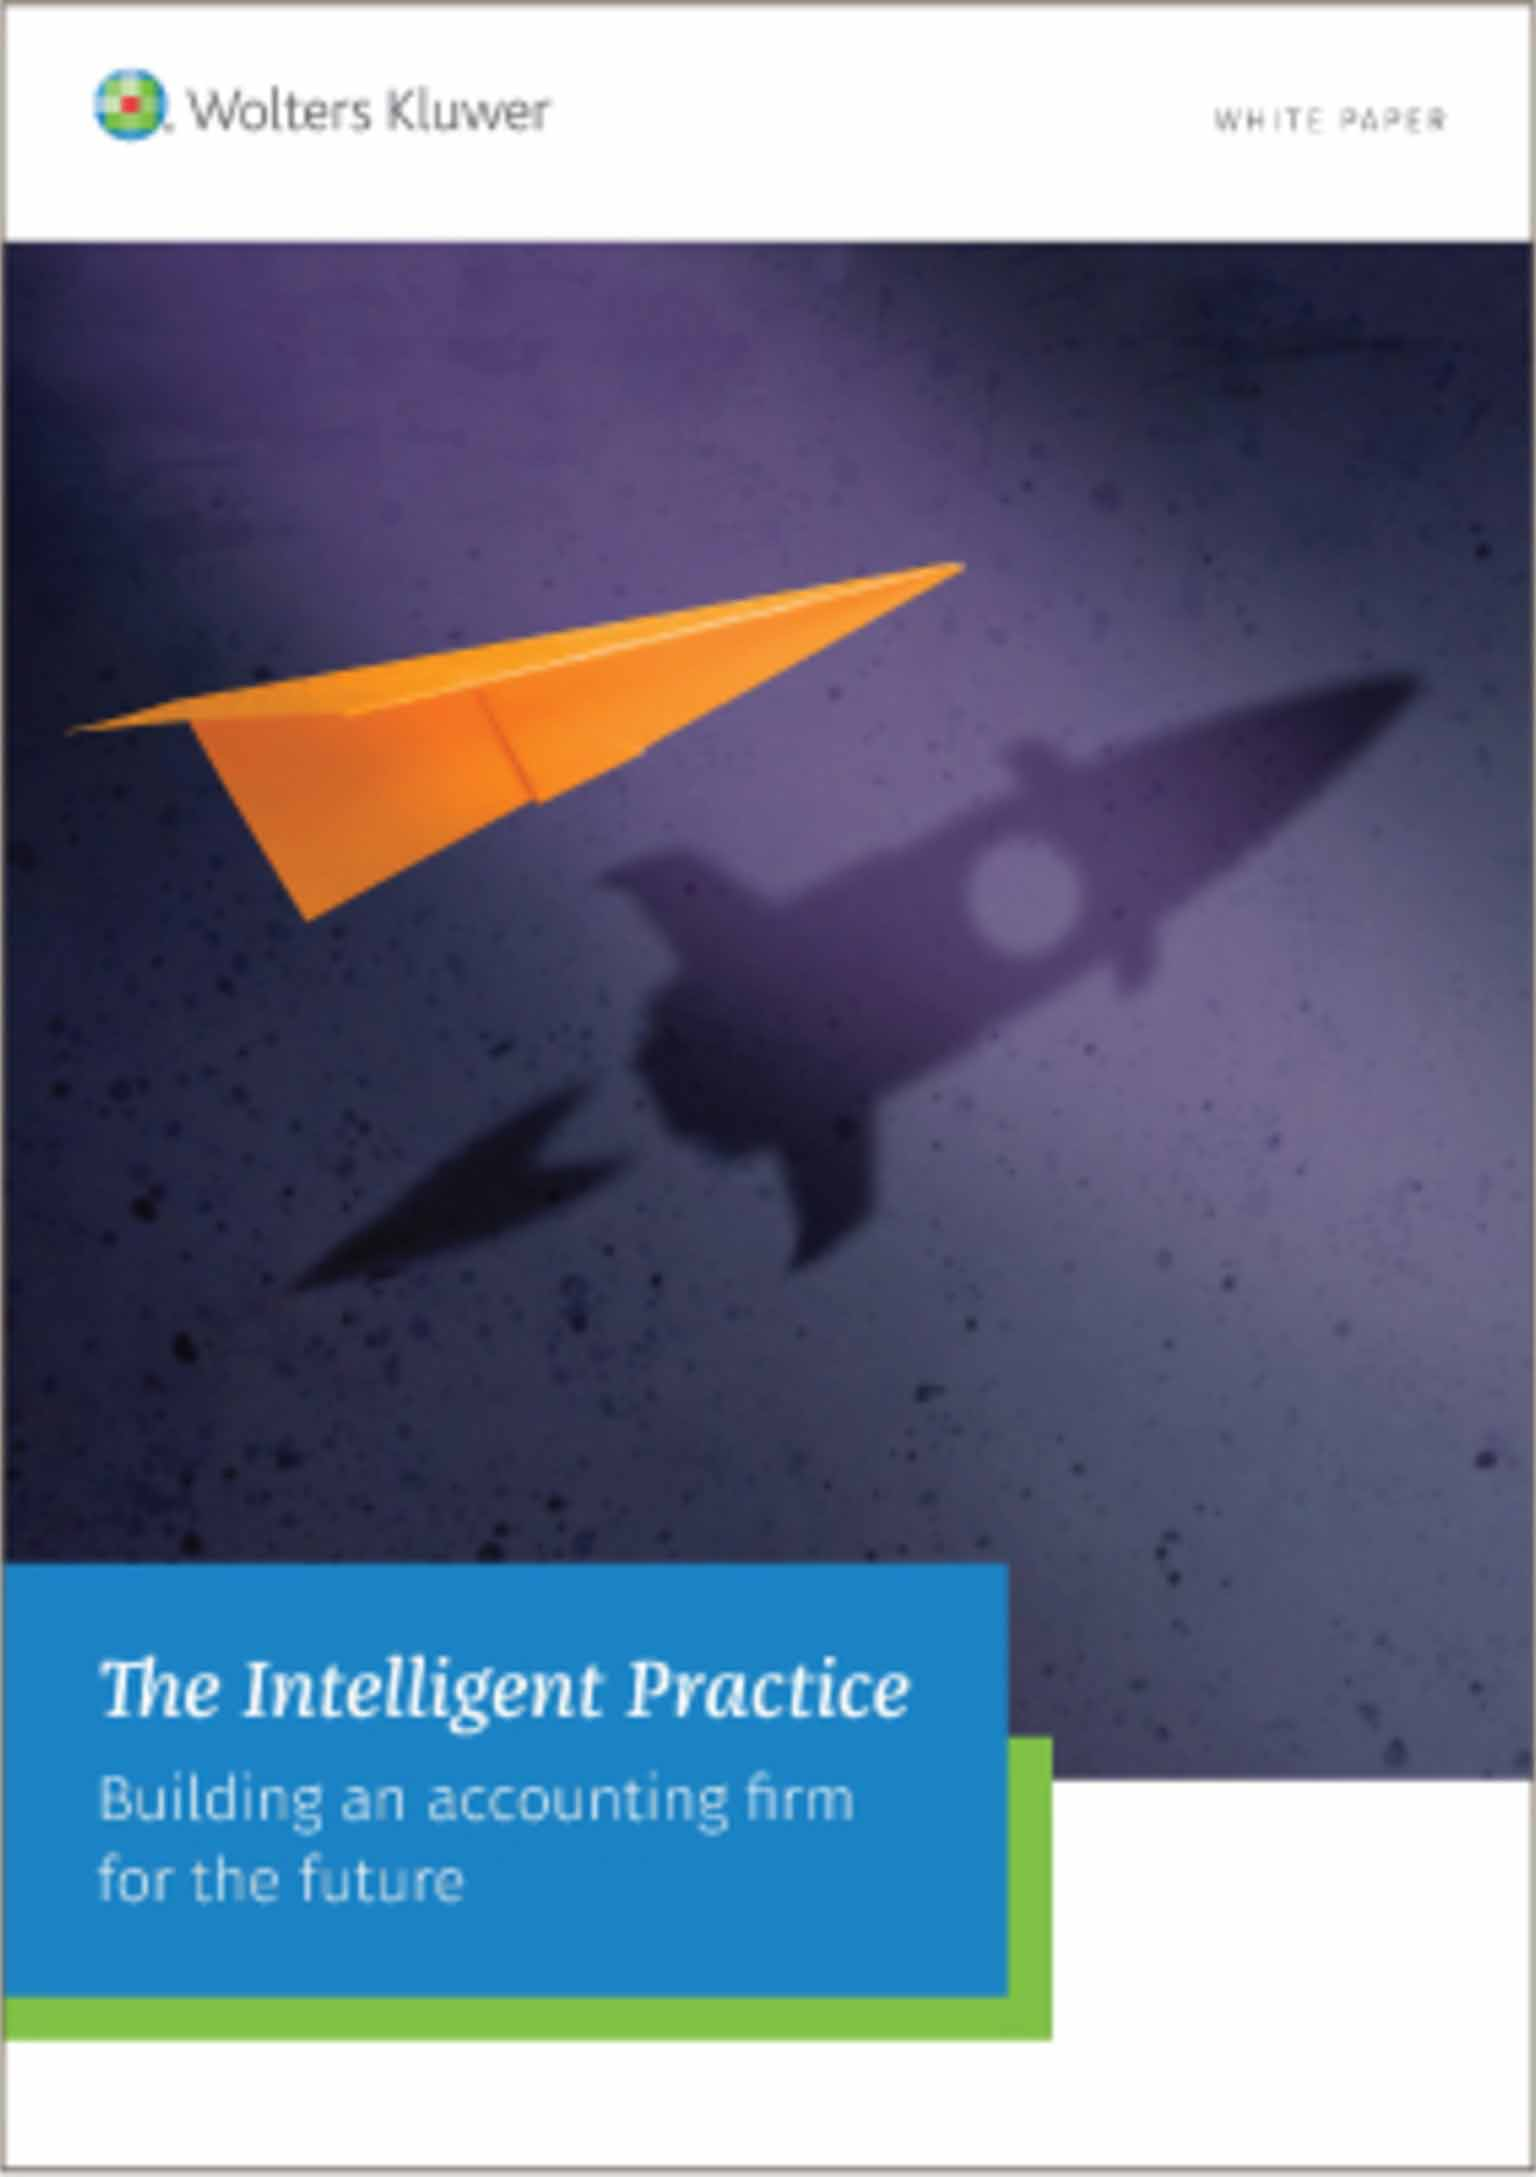 The Intelligent Practice - Building an Accounting Firm for the Future